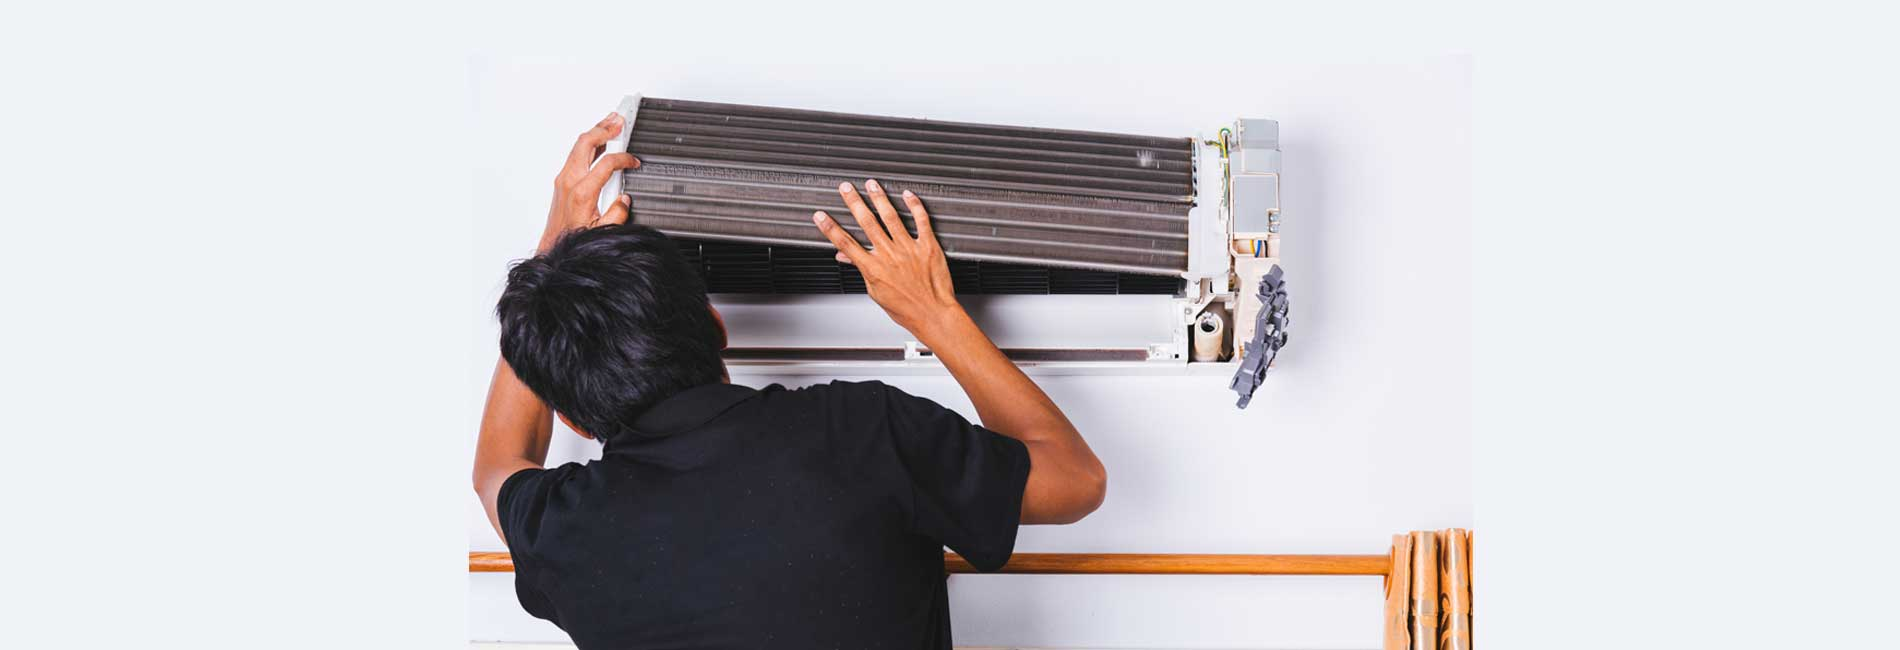 IFB Split AC Uninstallation in Kovalam